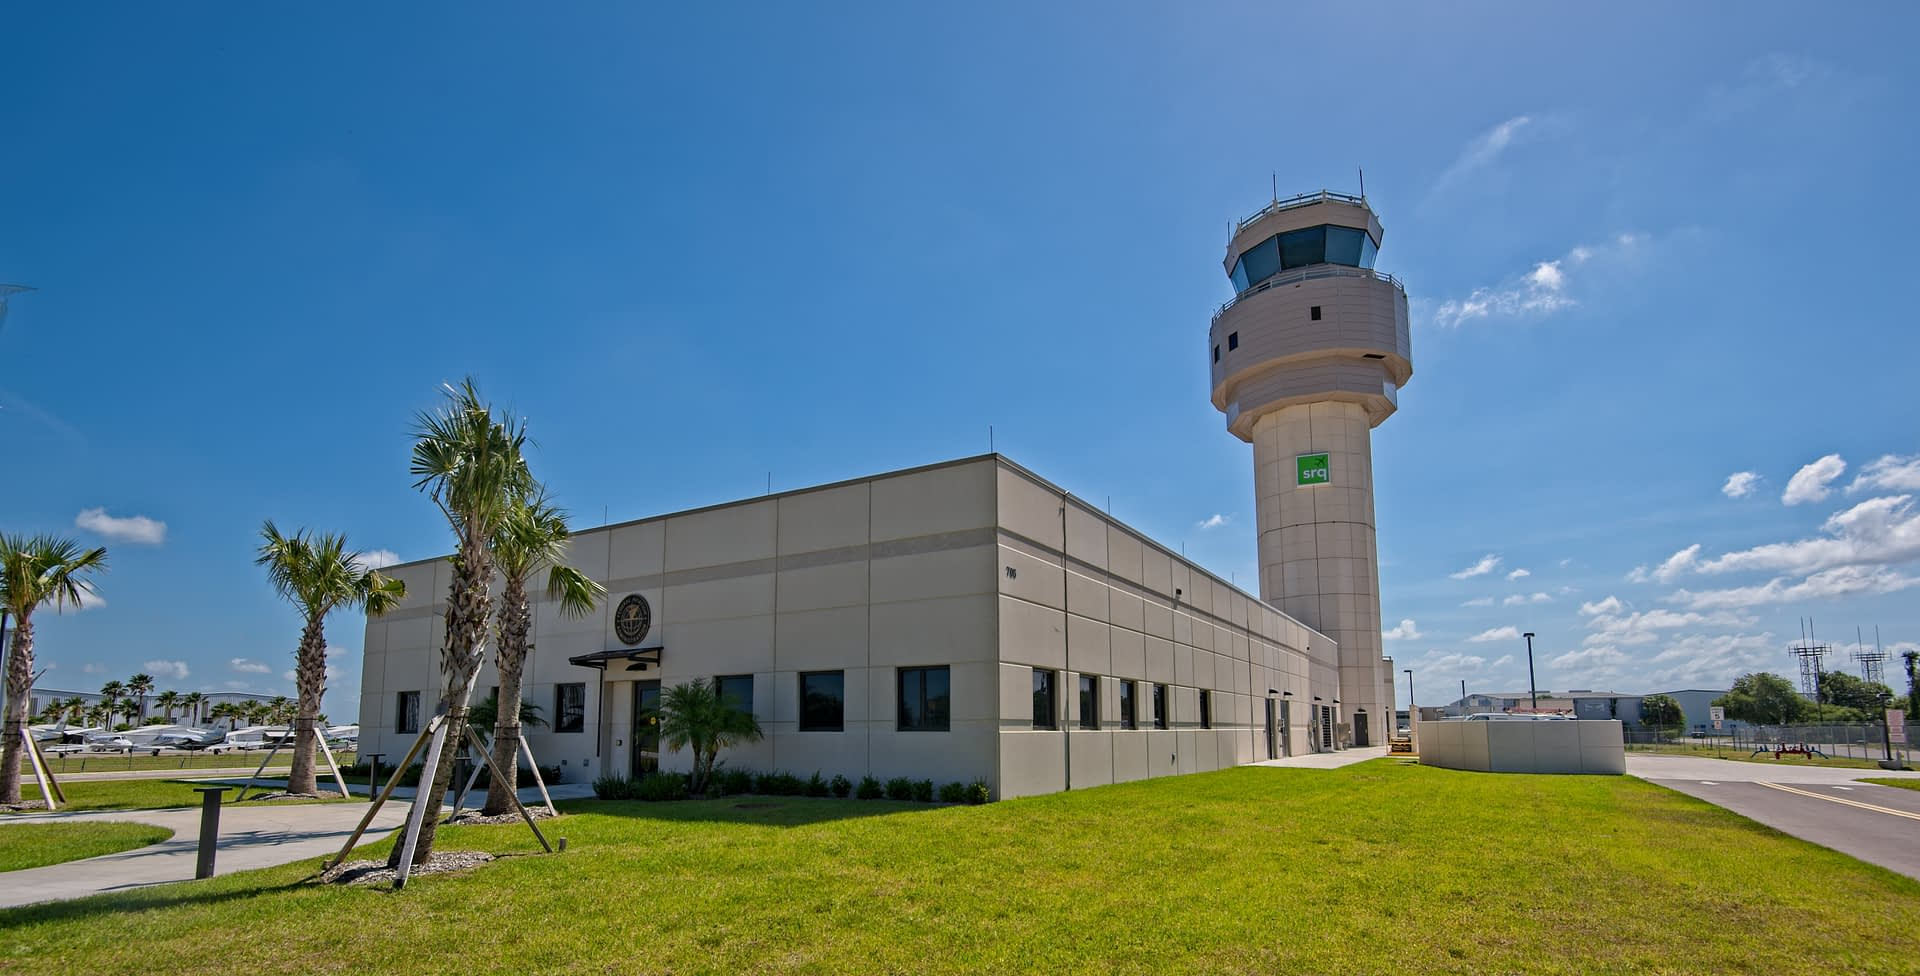 Halfacre Construction – SRQ Airport Tower